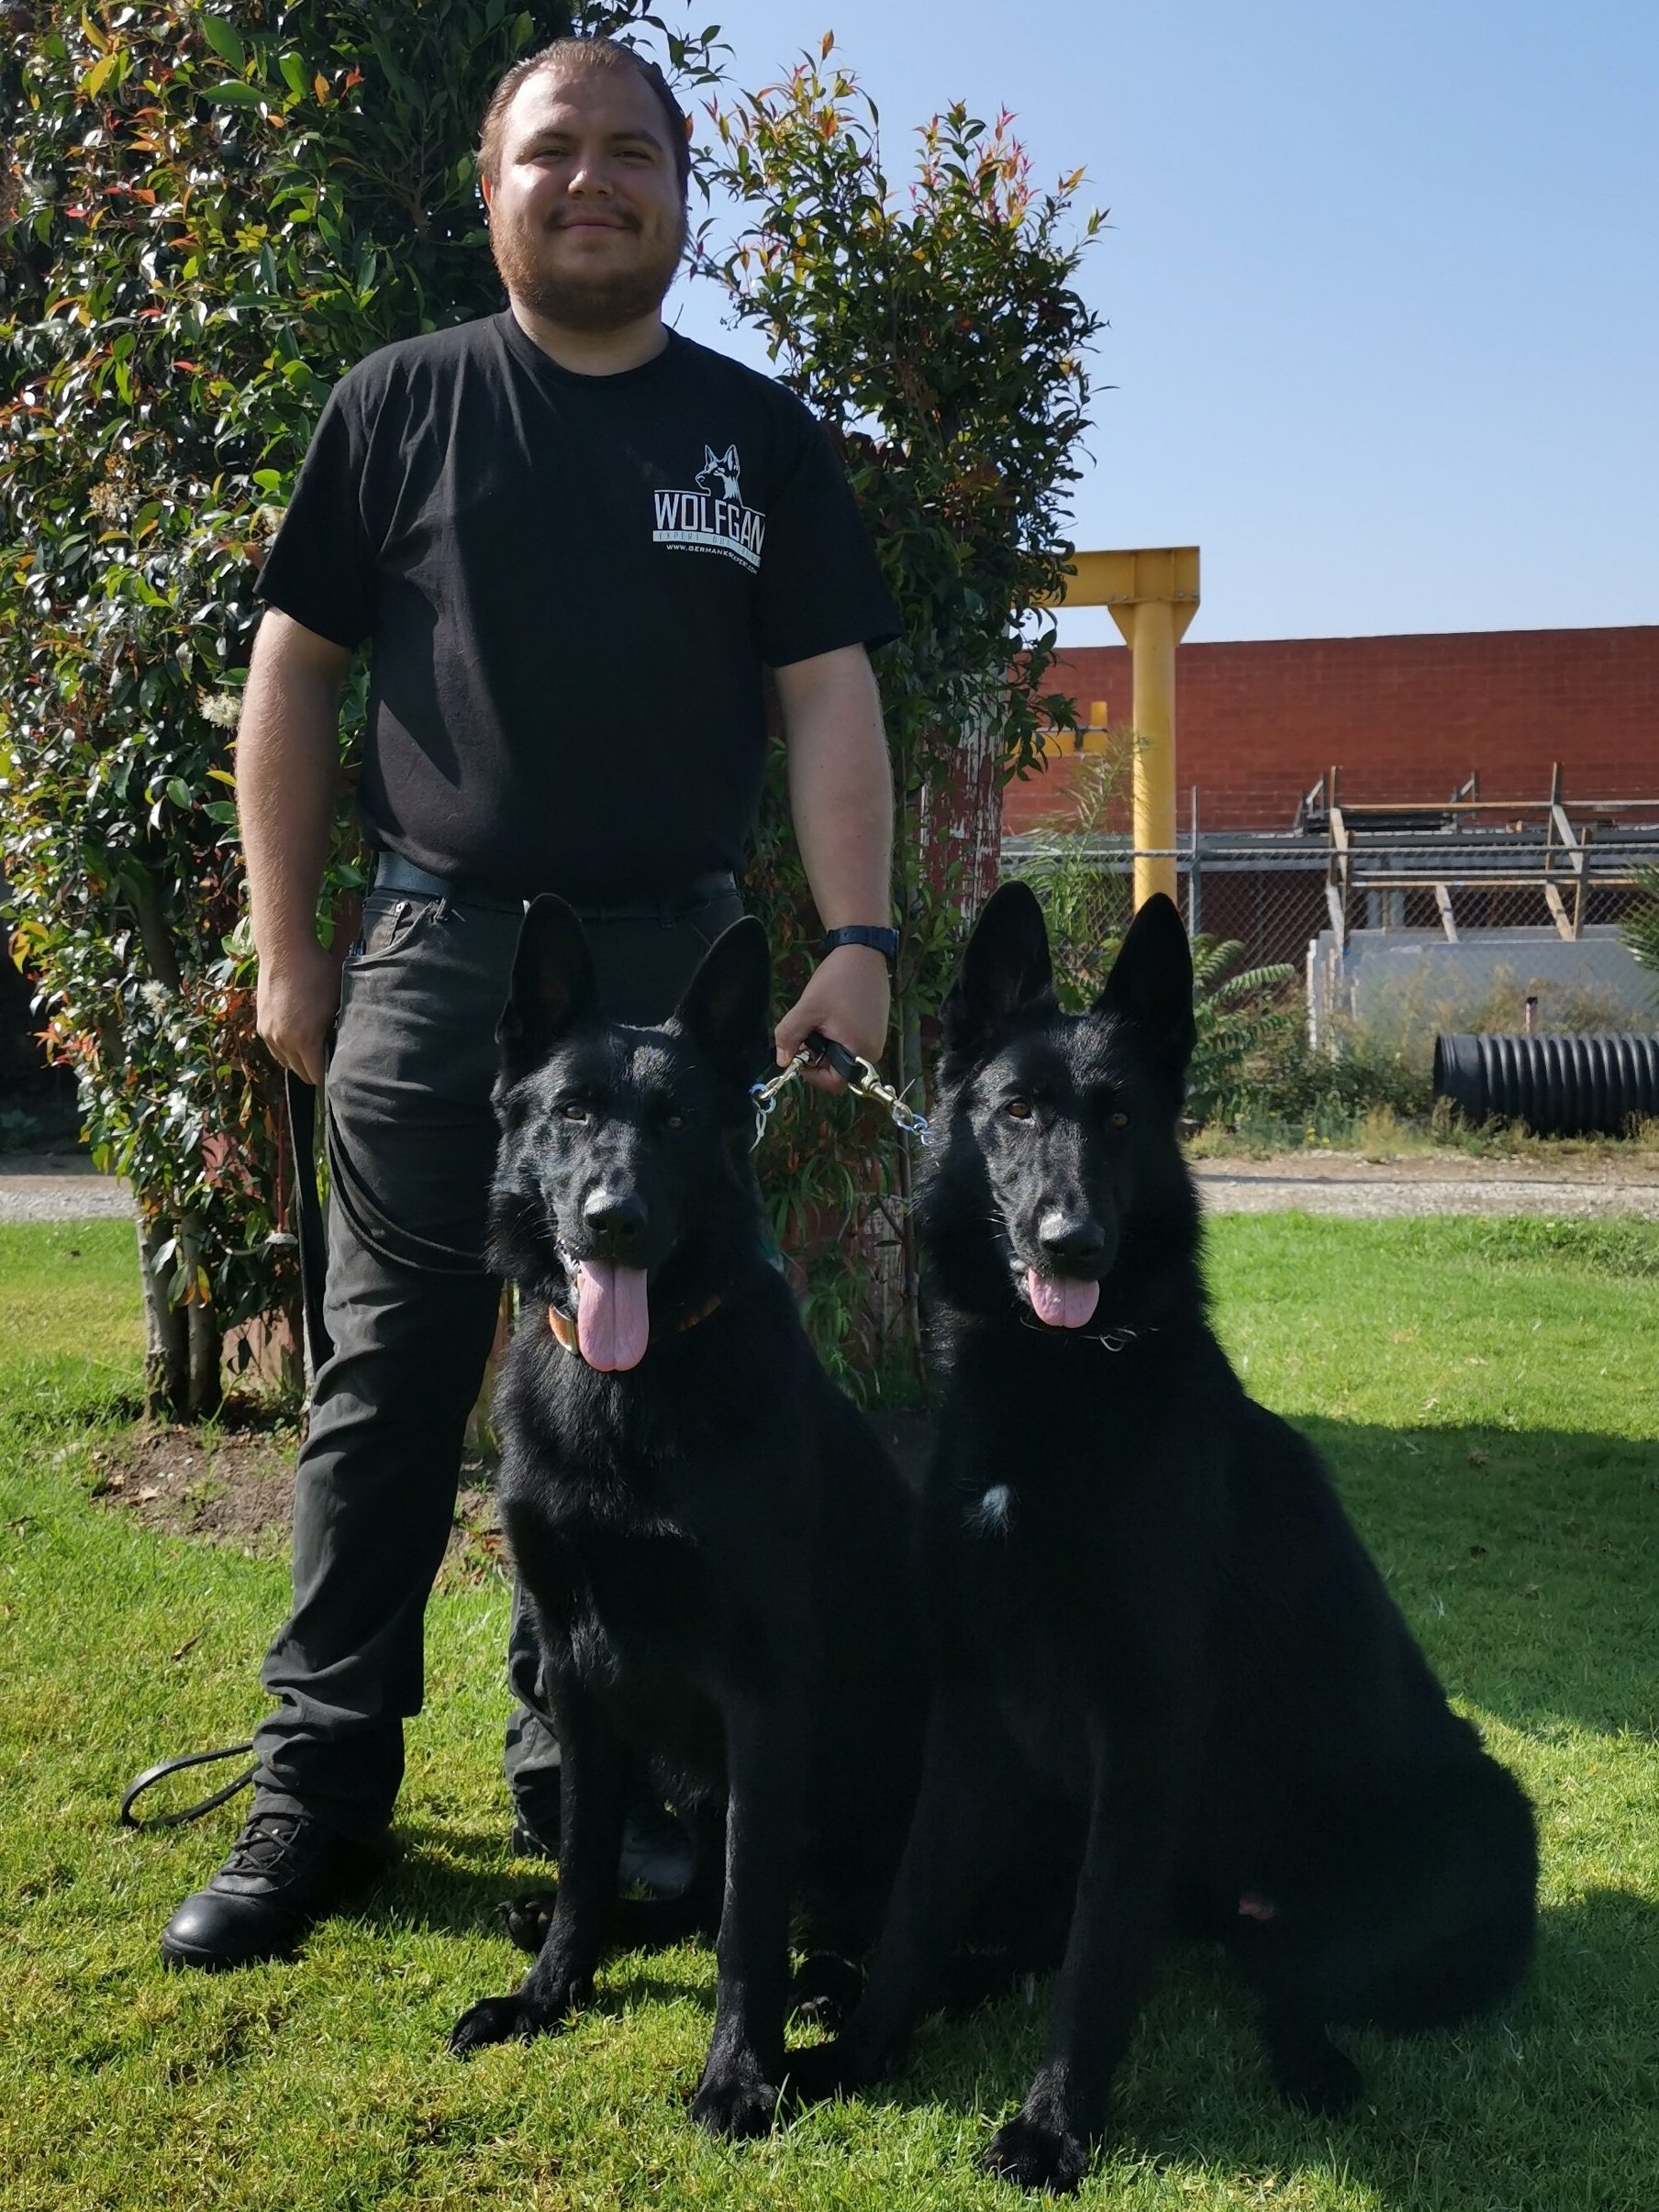 Gabriel is the newest Trainer in the Wolfgang K9 team. -